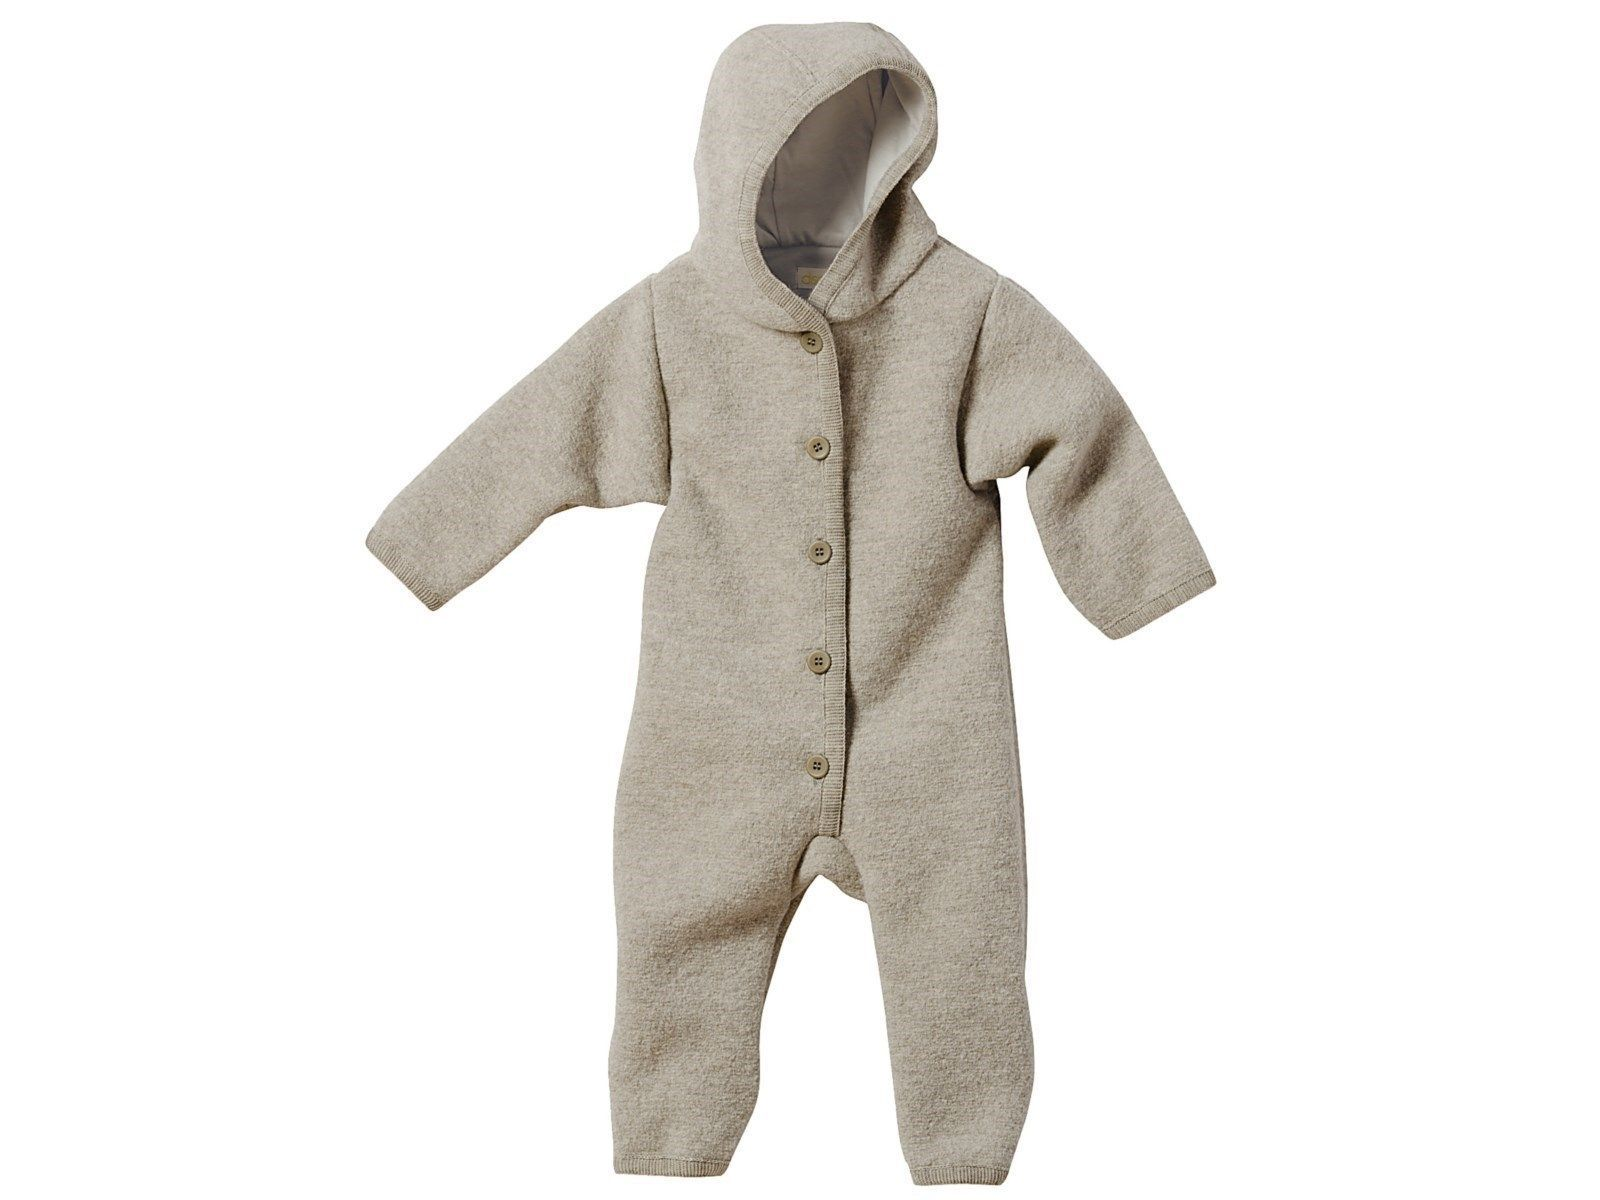 601a504c5 Maternity Kangaroo baby pocket Hoodie with Babies Carrier Women ...